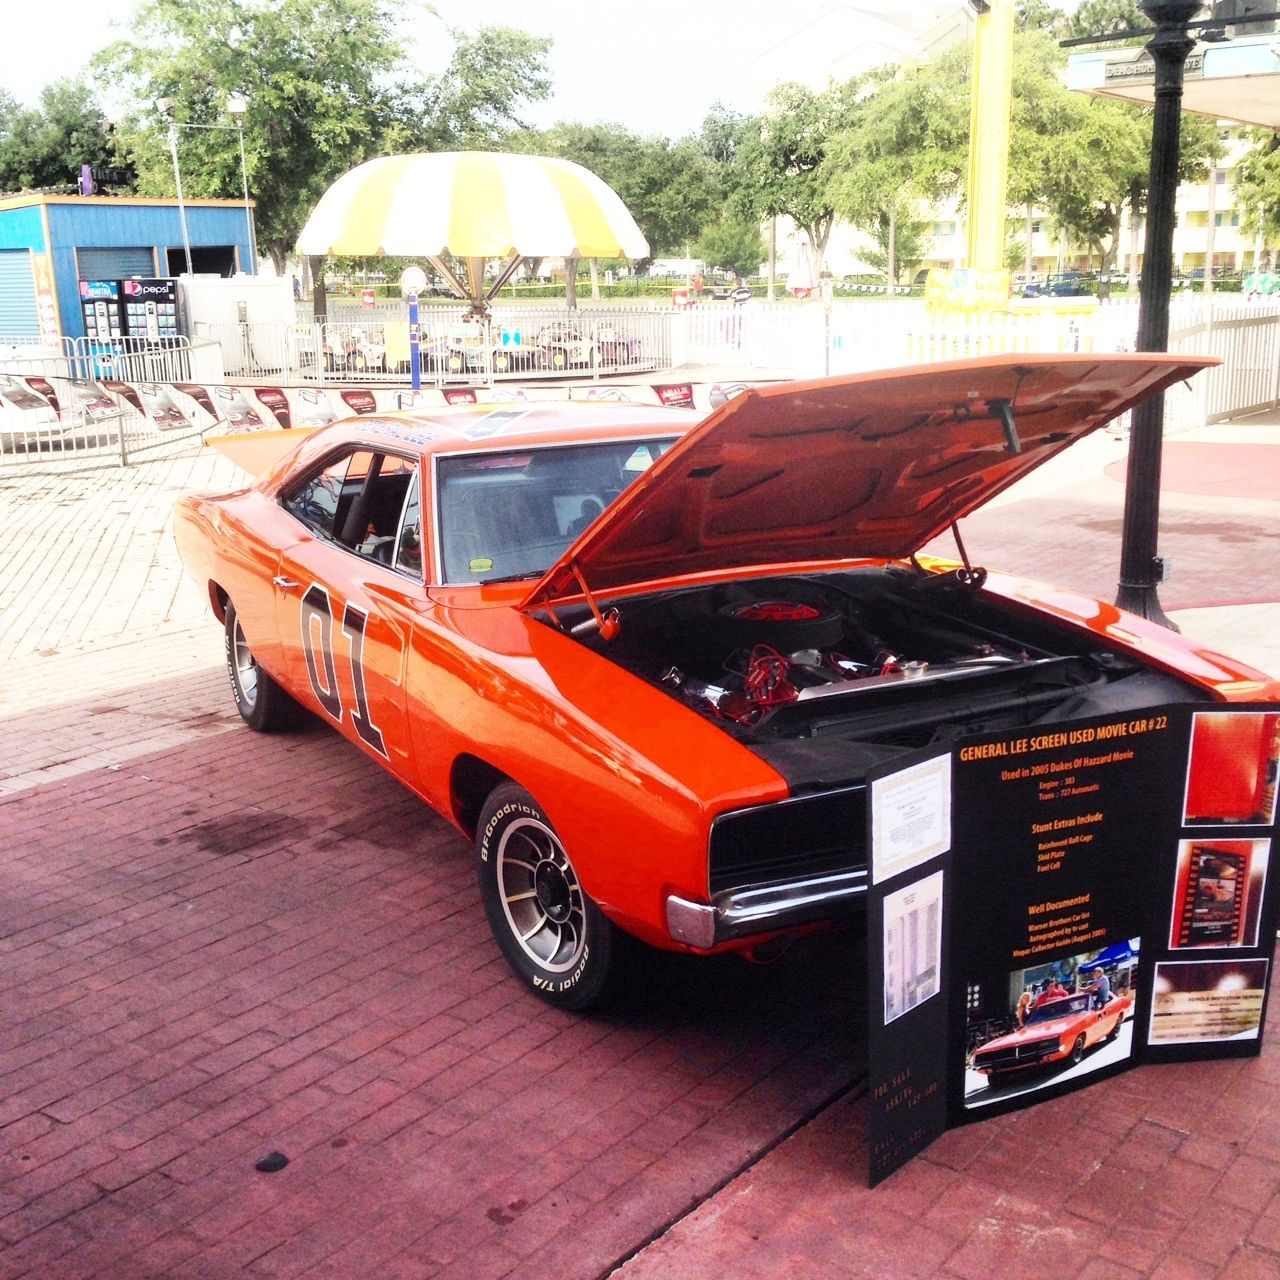 1969 Dodge Charger General Lee Movie Car Fully Documented 22 1968 17435345